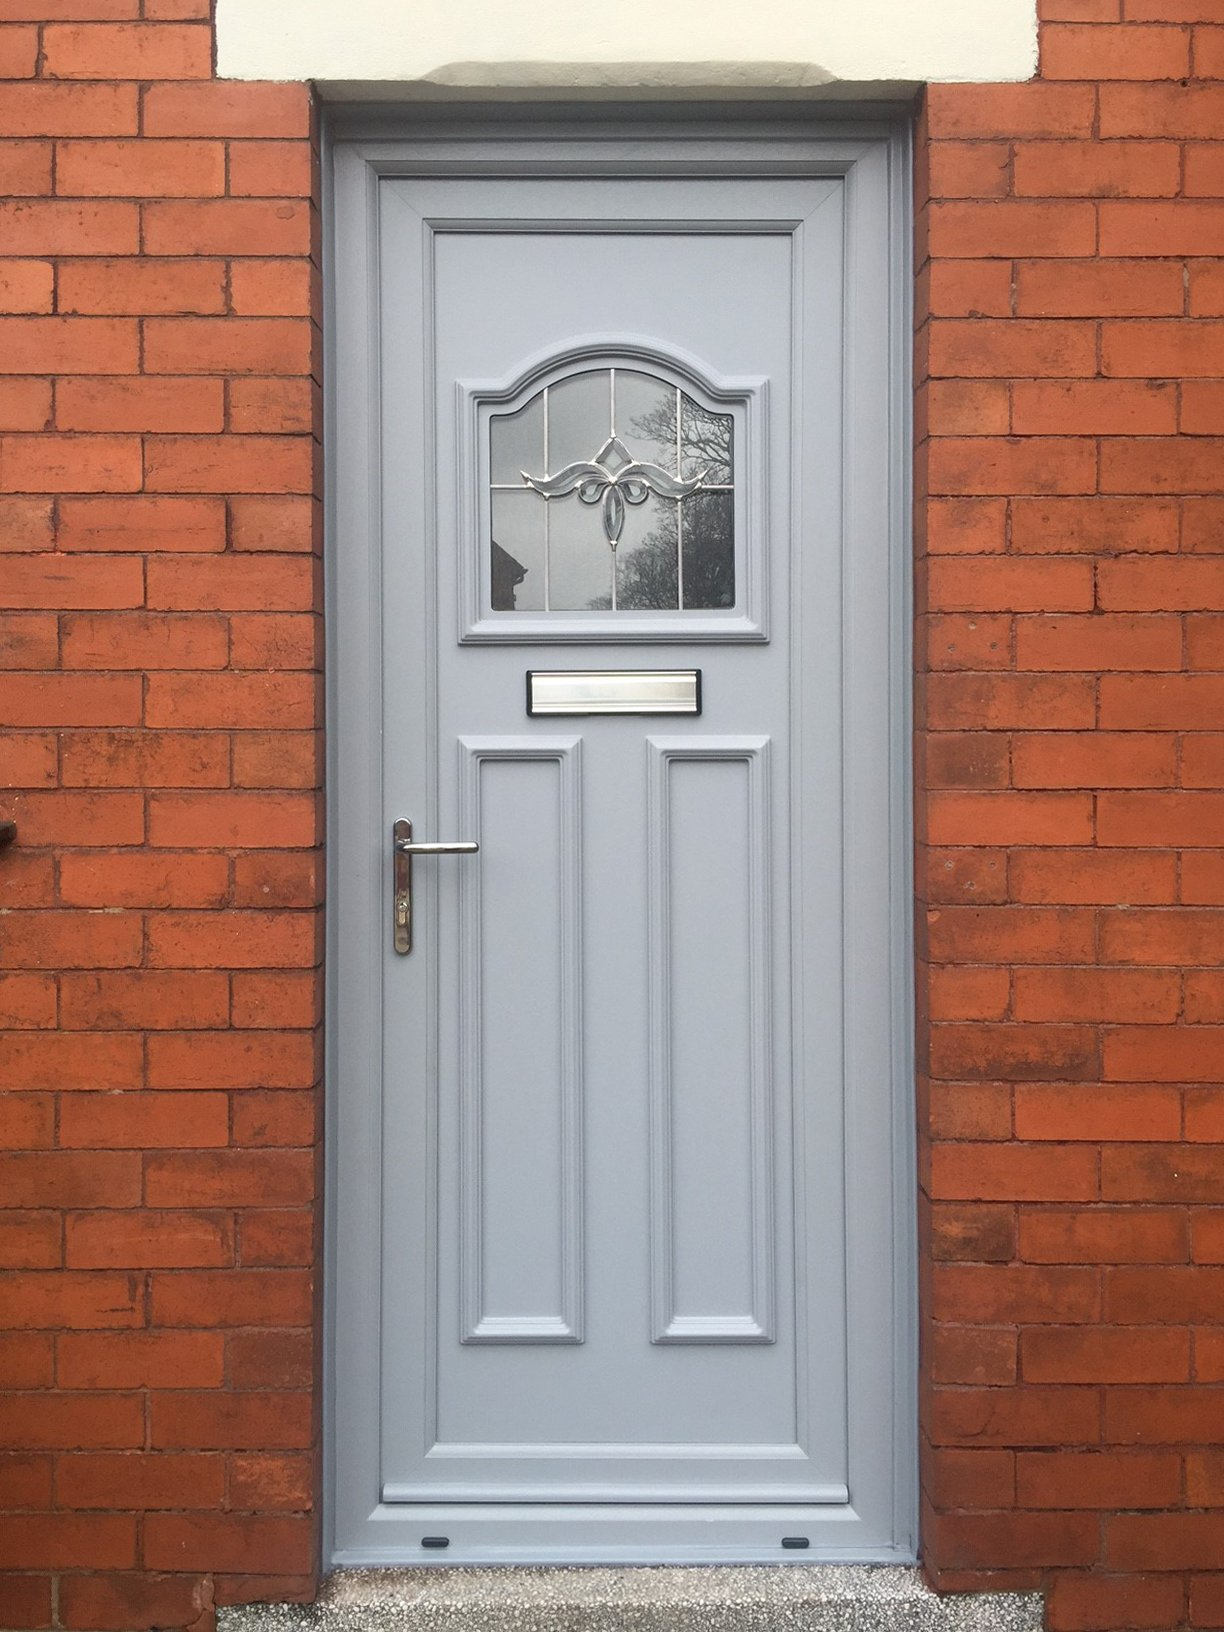 Fully fitted and supply only upvc composite doors by we for Exterior back door styles